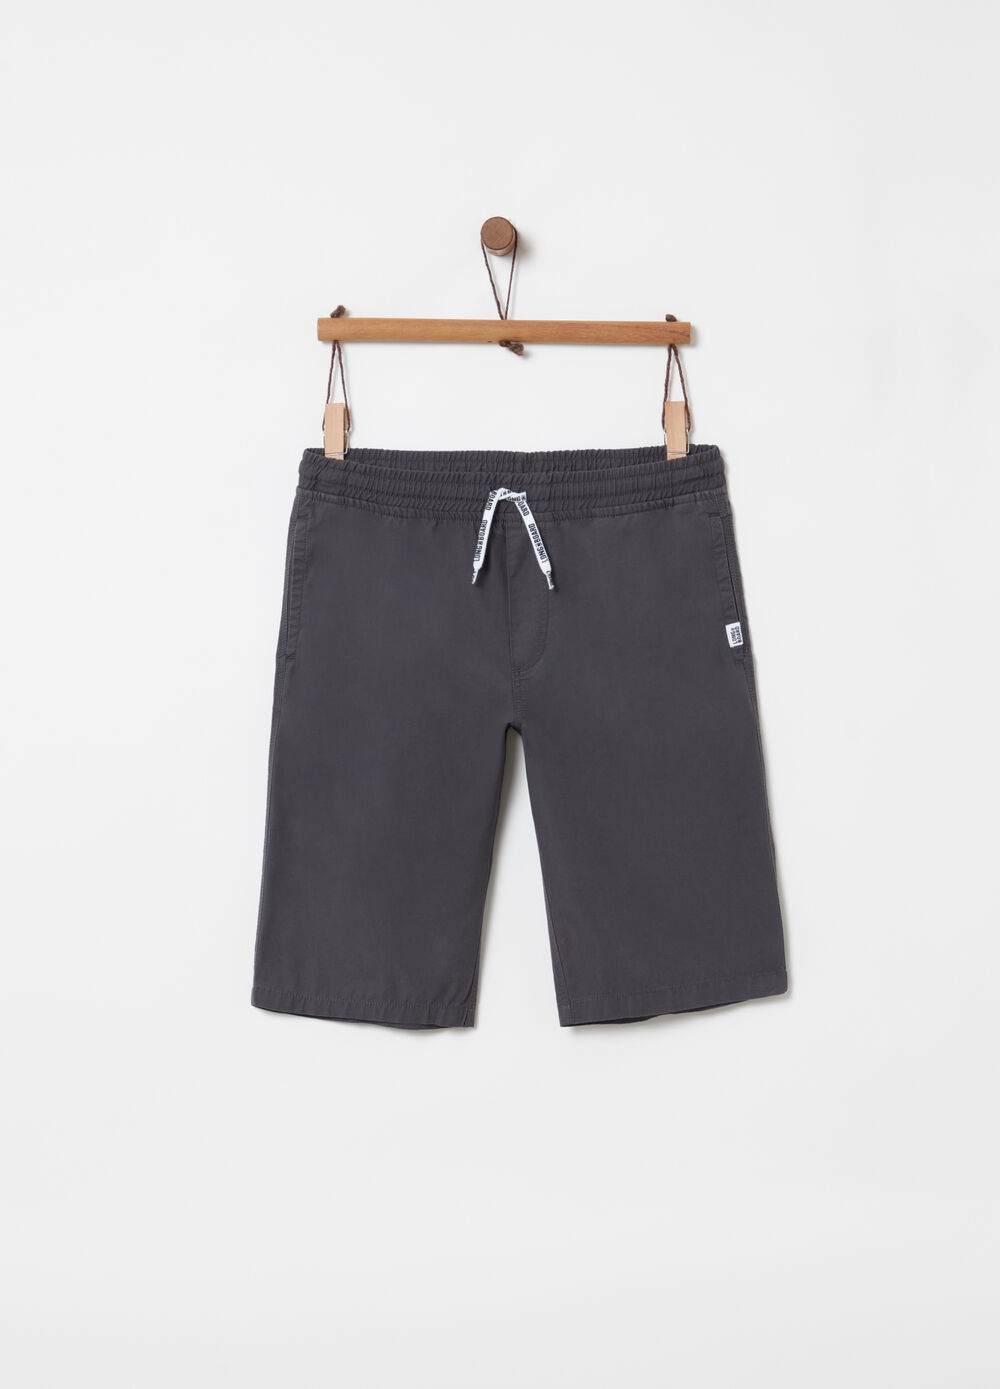 Bermuda shorts in 100% cotton with drawstring and pockets